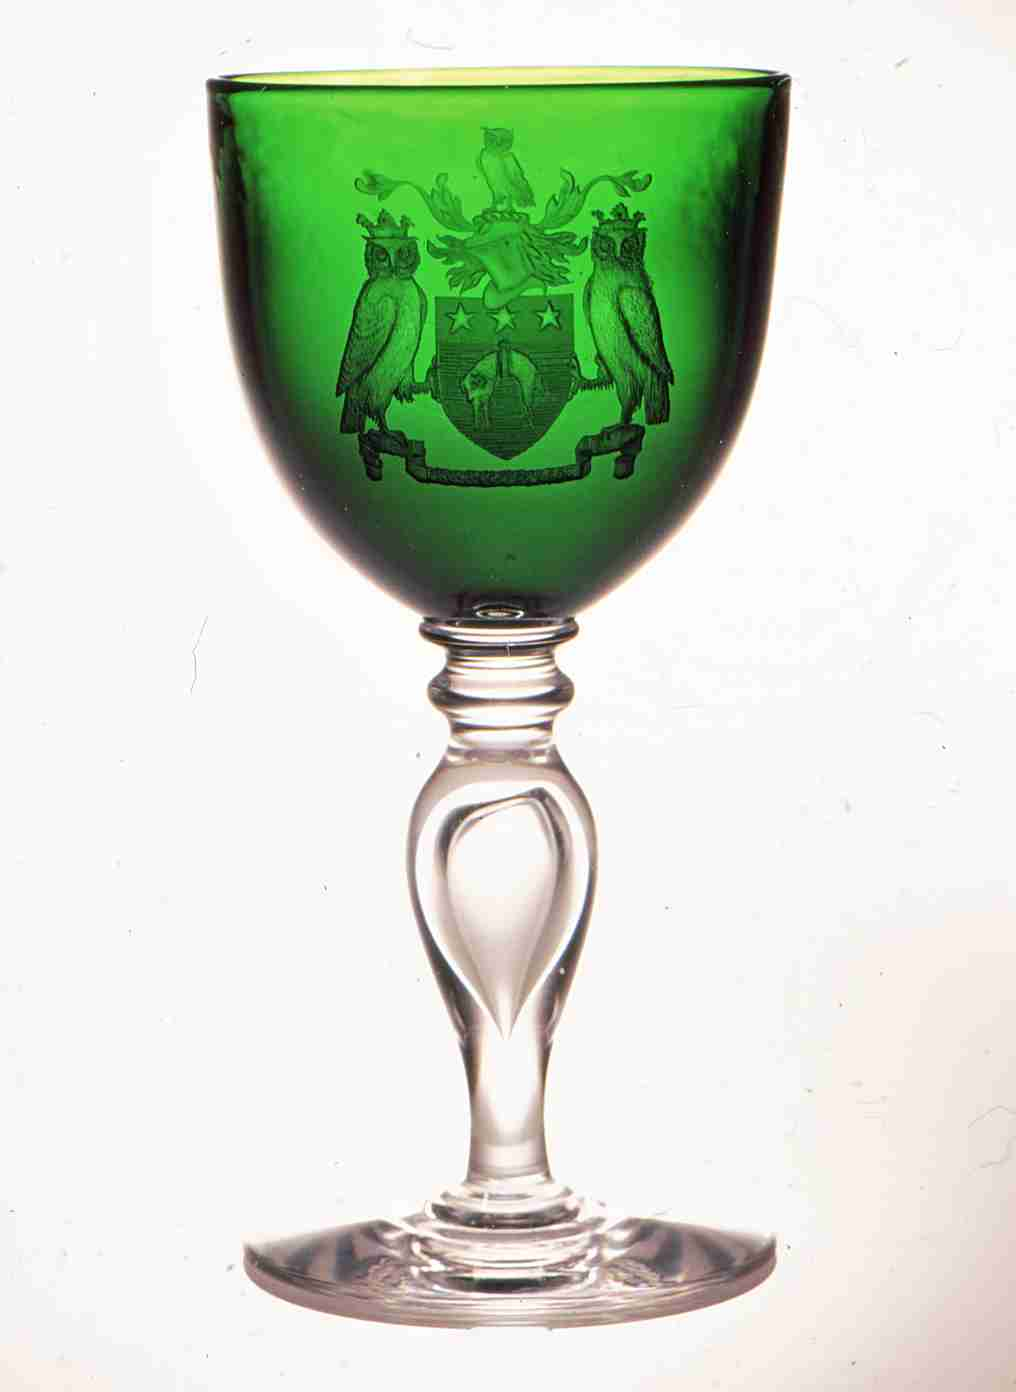 Leeds Crest Goblet - engraved by Peter Russell